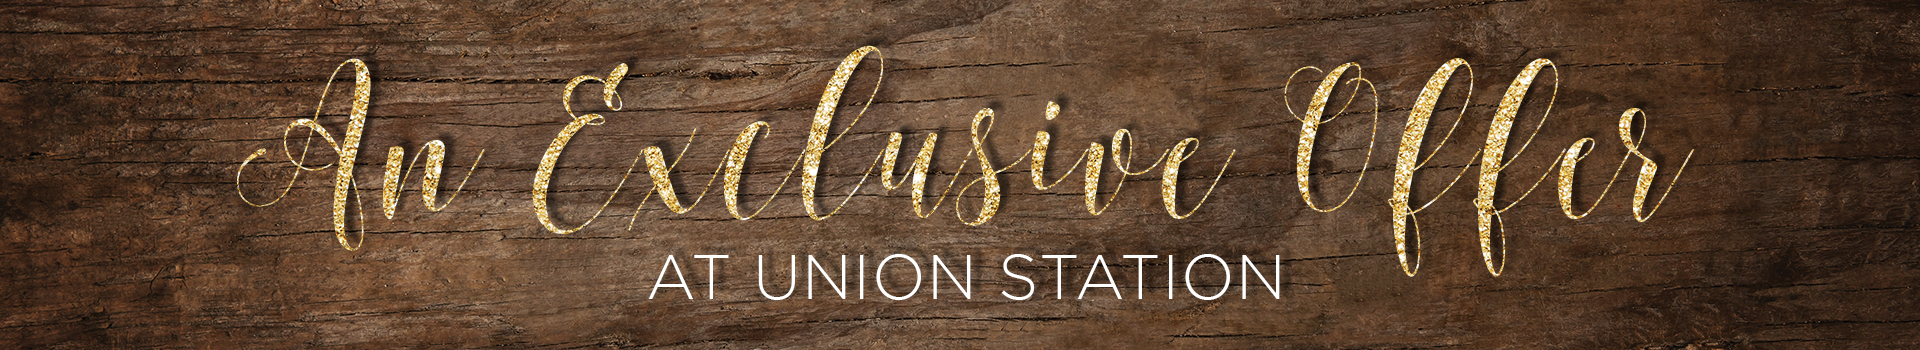 unionstation_exclusive offer banner